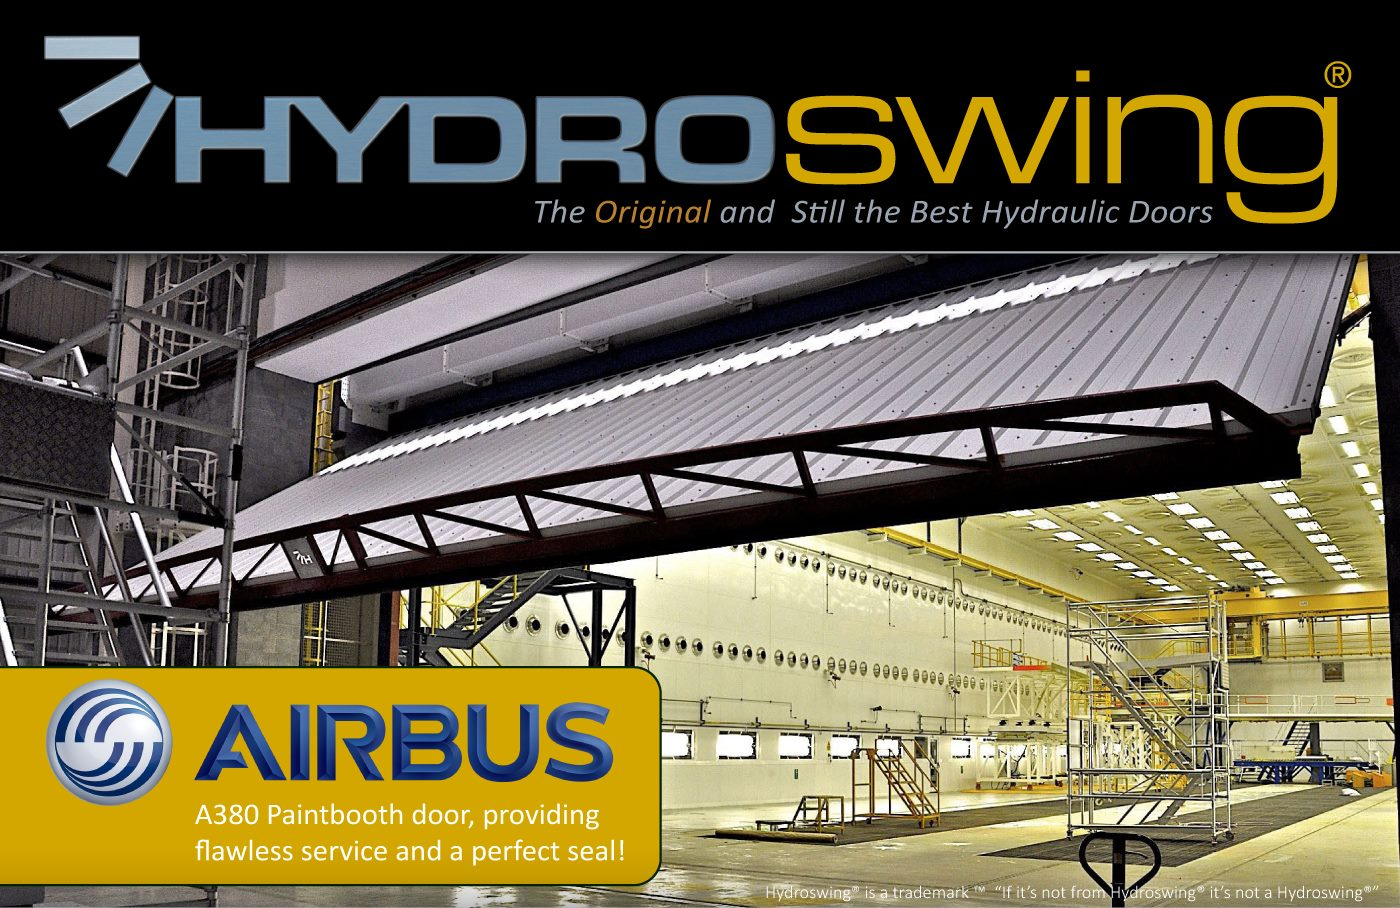 hydroswing uk industrial doors airbus paint booth